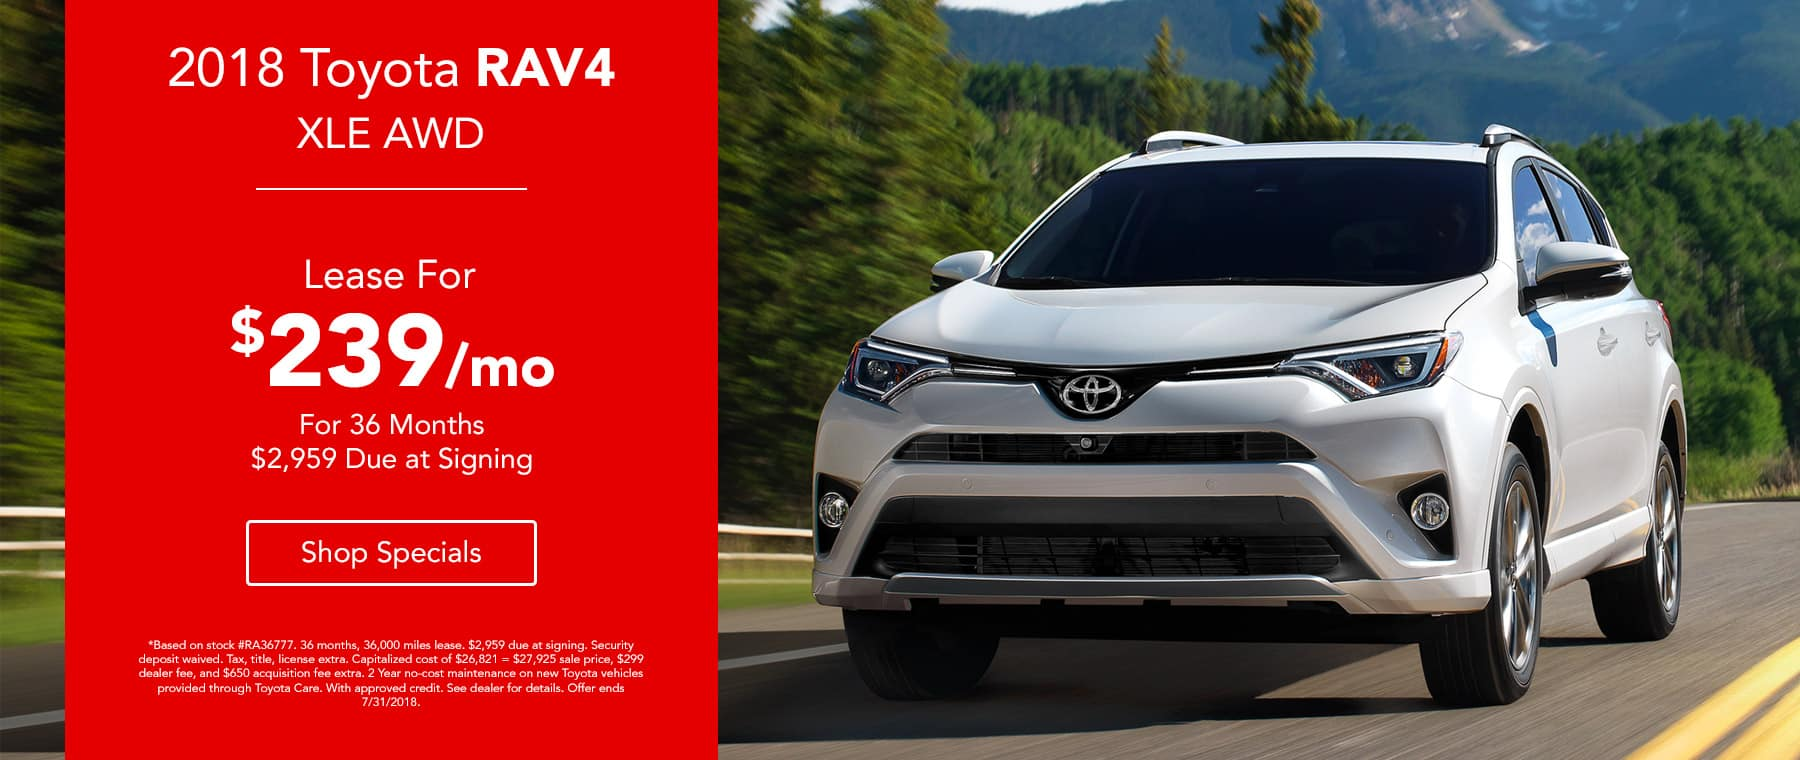 2018 Toyota RAV4 XLE AWD Lease for $239 for 36 months